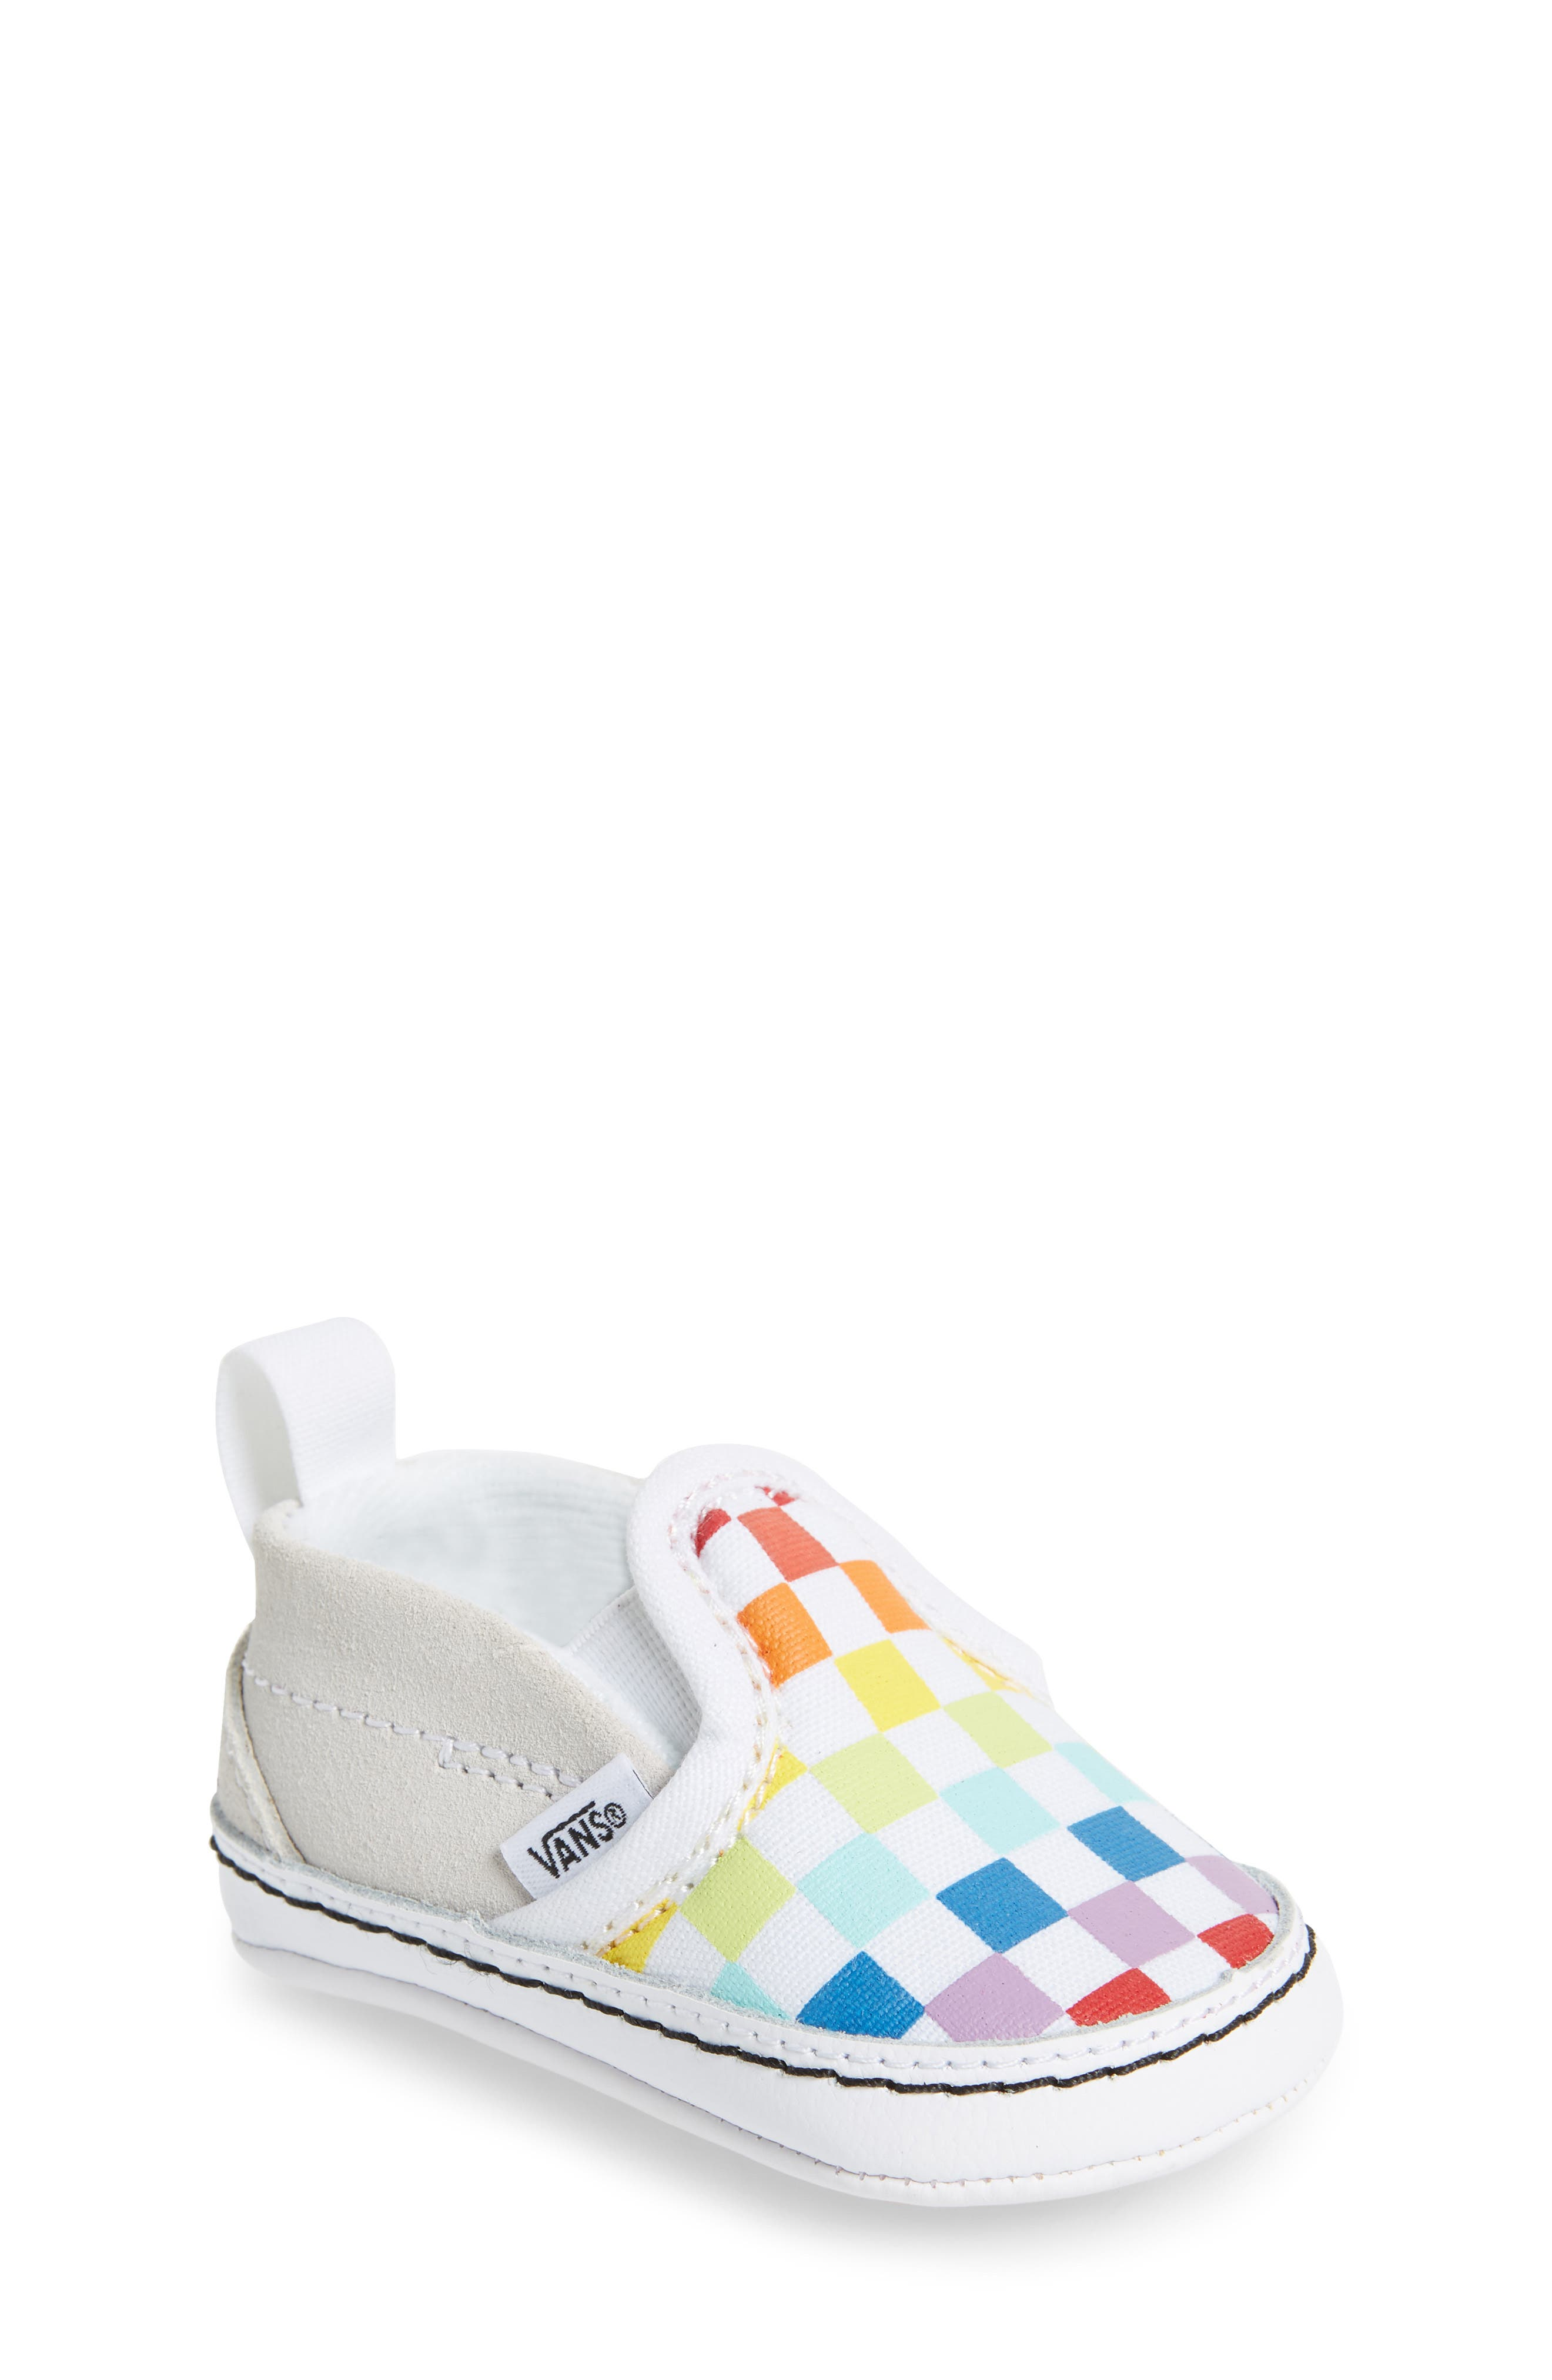 VANS Slip-On Crib Shoe, Main, color, CHECKERBOARD RAINBOW/ WHITE